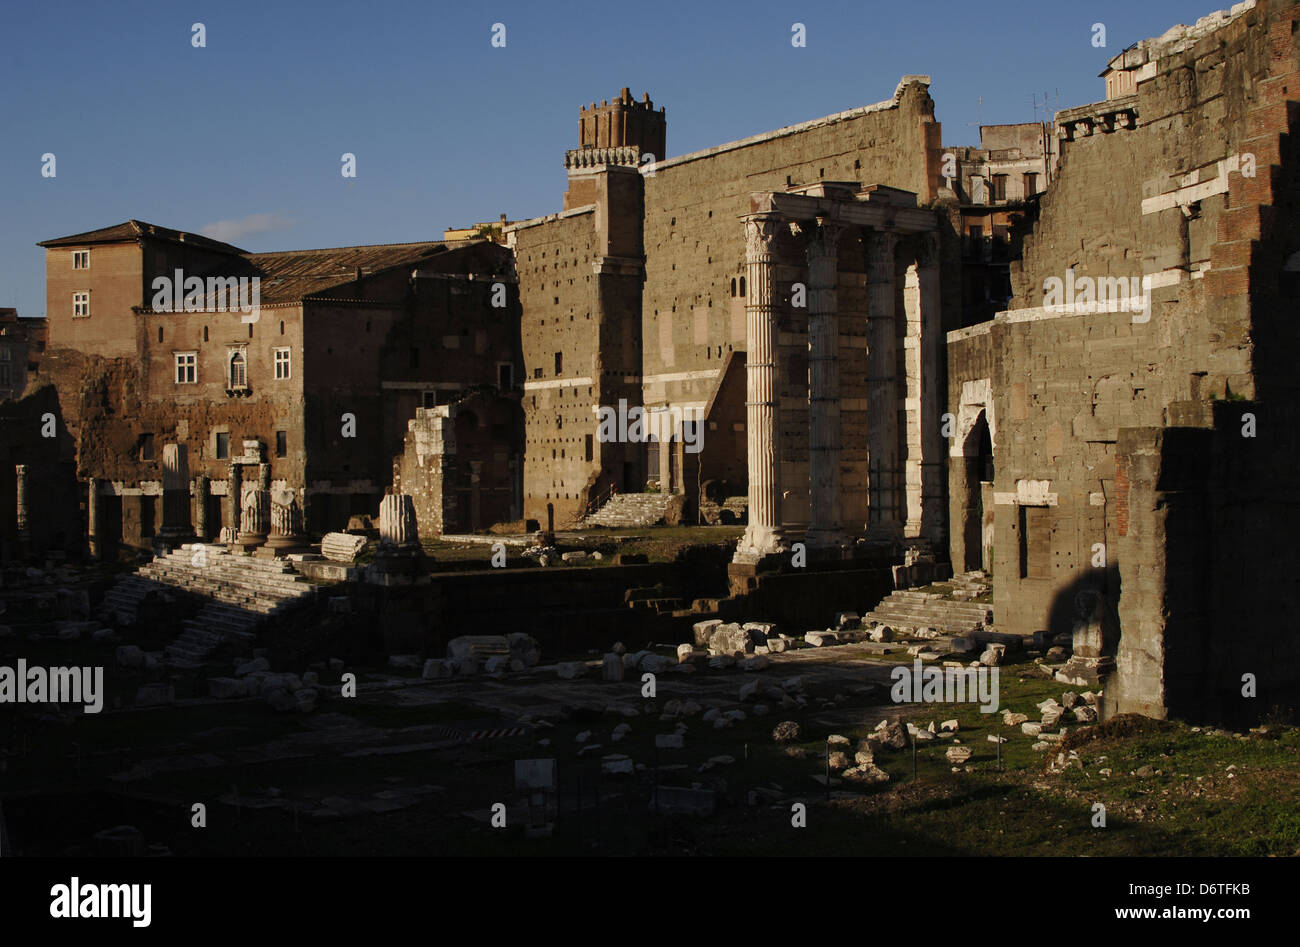 """a history and meaning of the temple of mars ultor in the forum of augustus in rome The temple of augustus and rome in ancyra  remains of the forum of augustus with the temple of mars ultor in the  (from the greek thermos meaning """"hot."""